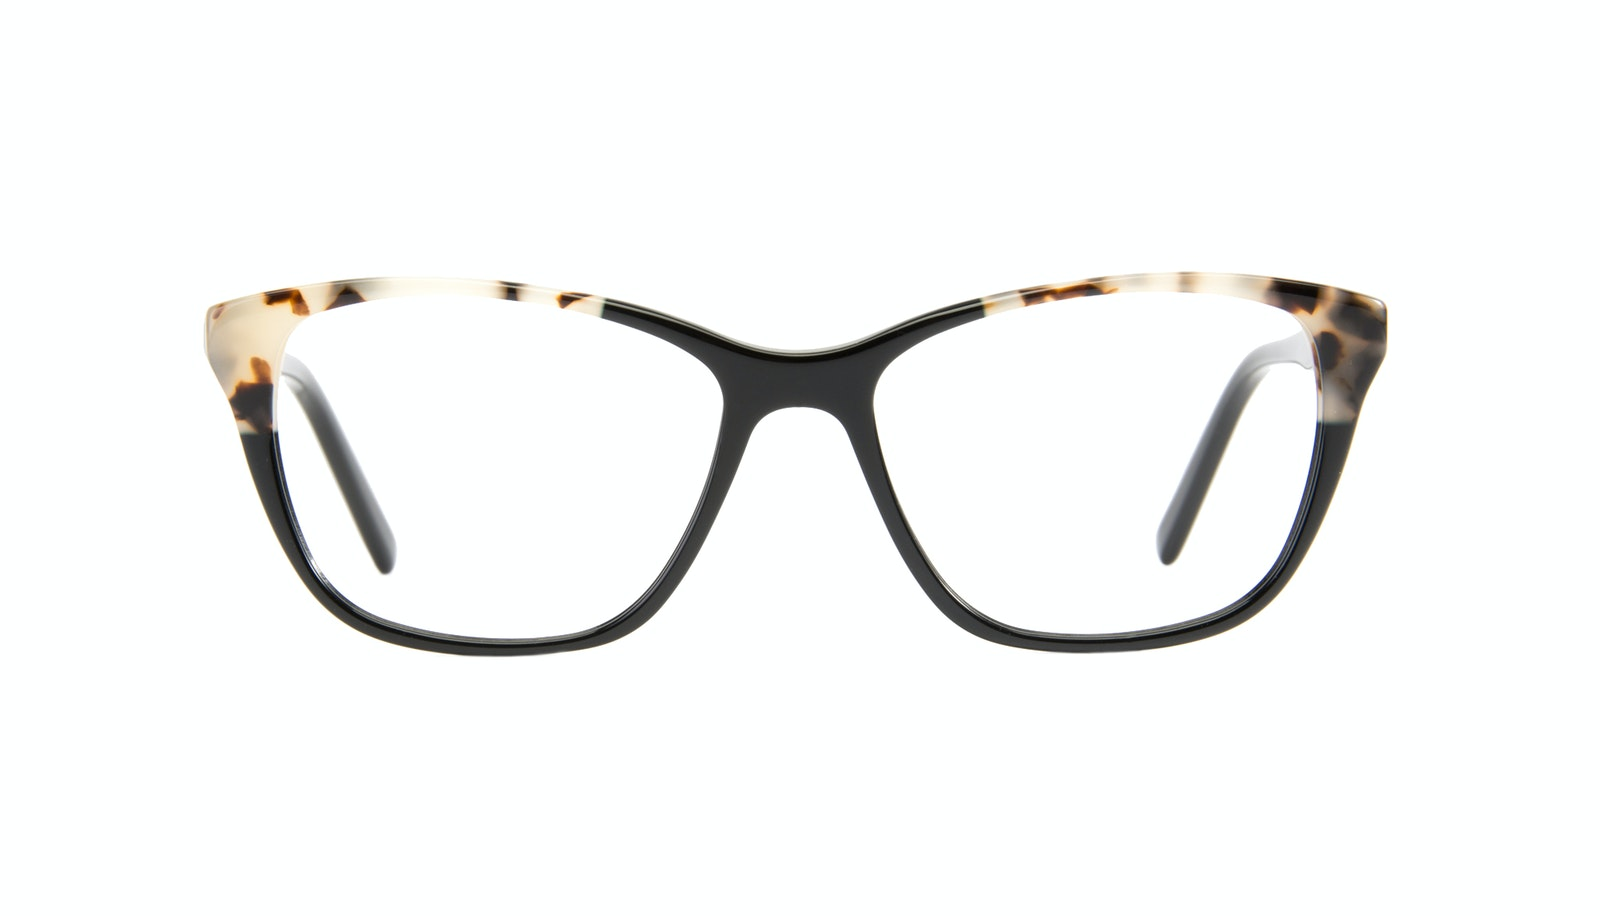 354be35890a9 Affordable Fashion Glasses Cat Eye Eyeglasses Women Myrtle Petite Ebony  Granite